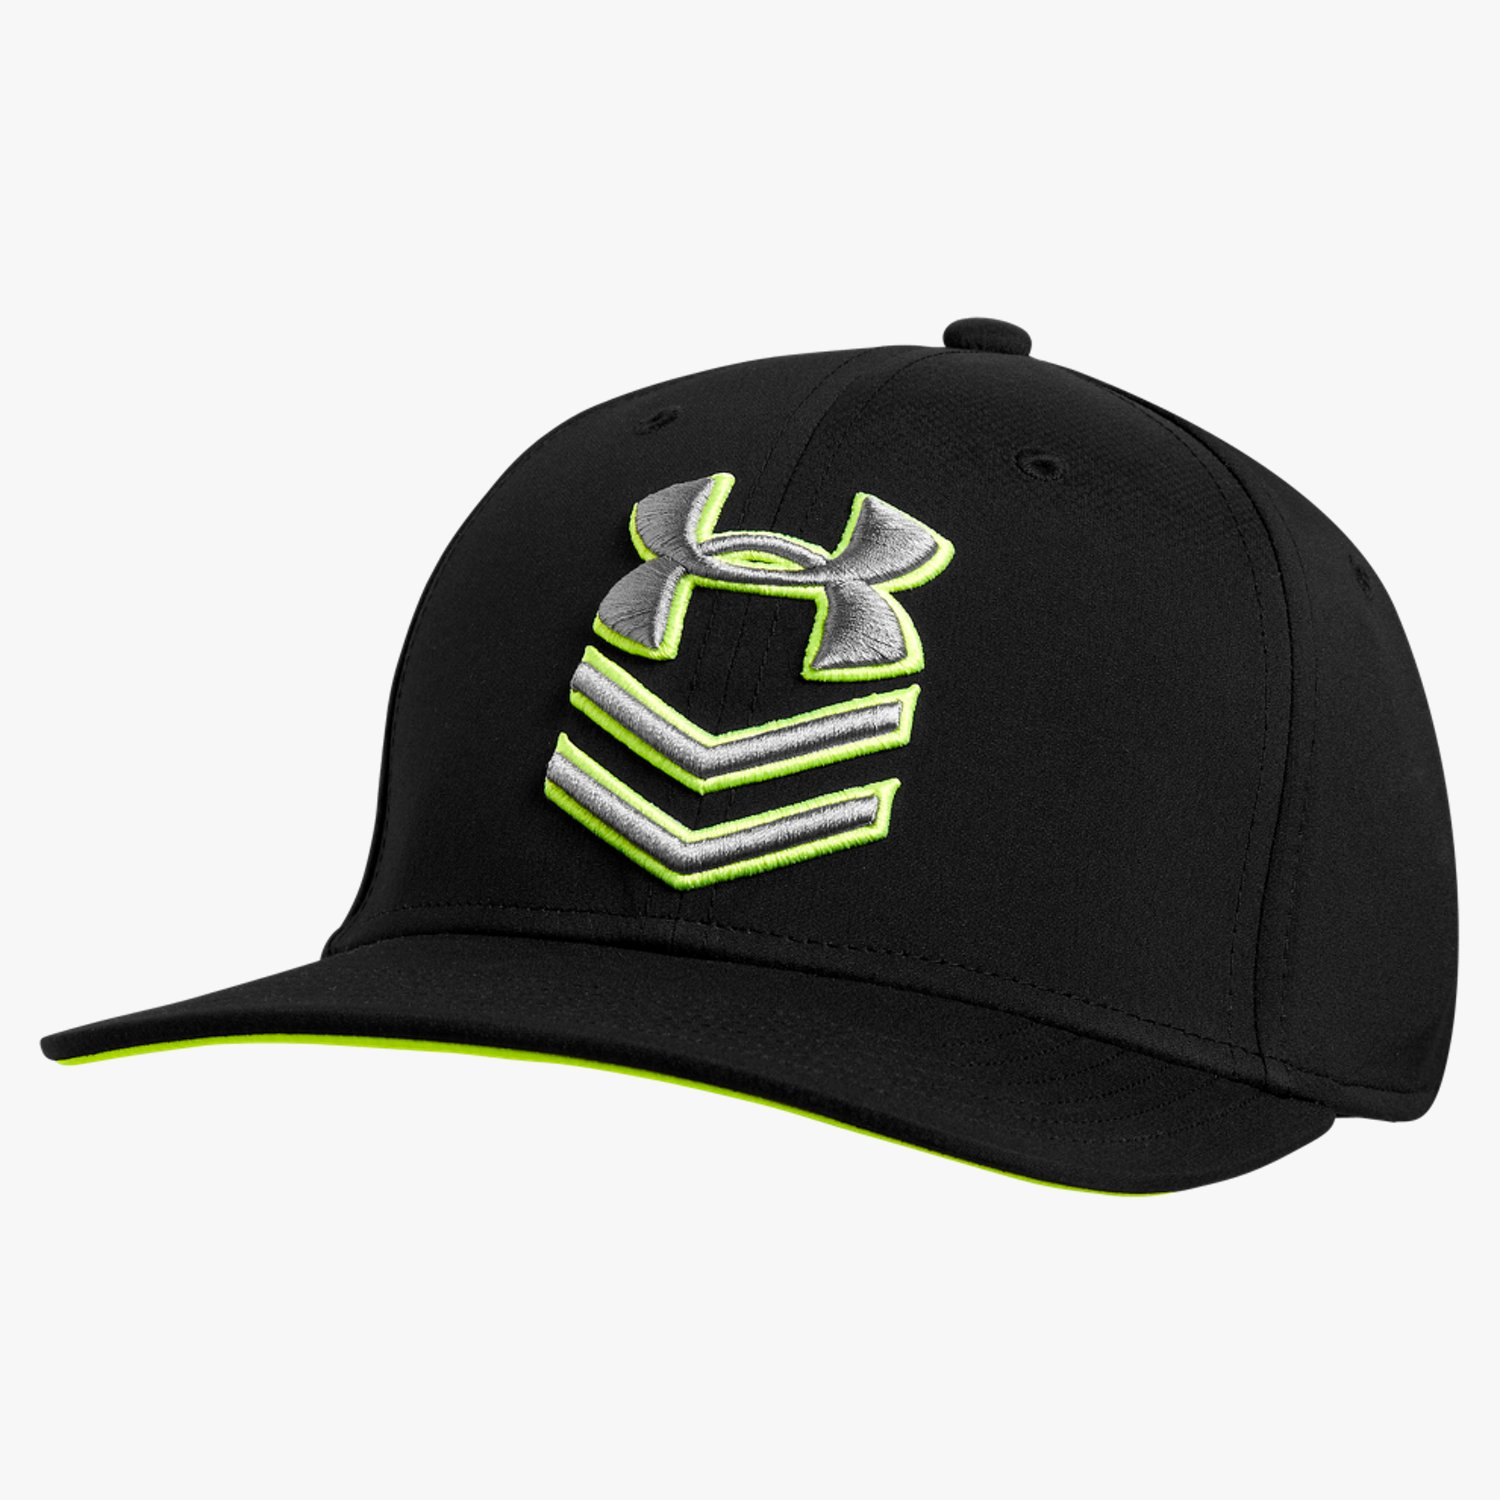 Under Armour UA Undeniable Stretch Fit Cap Black/High-Vis Yellow/Graphite-30